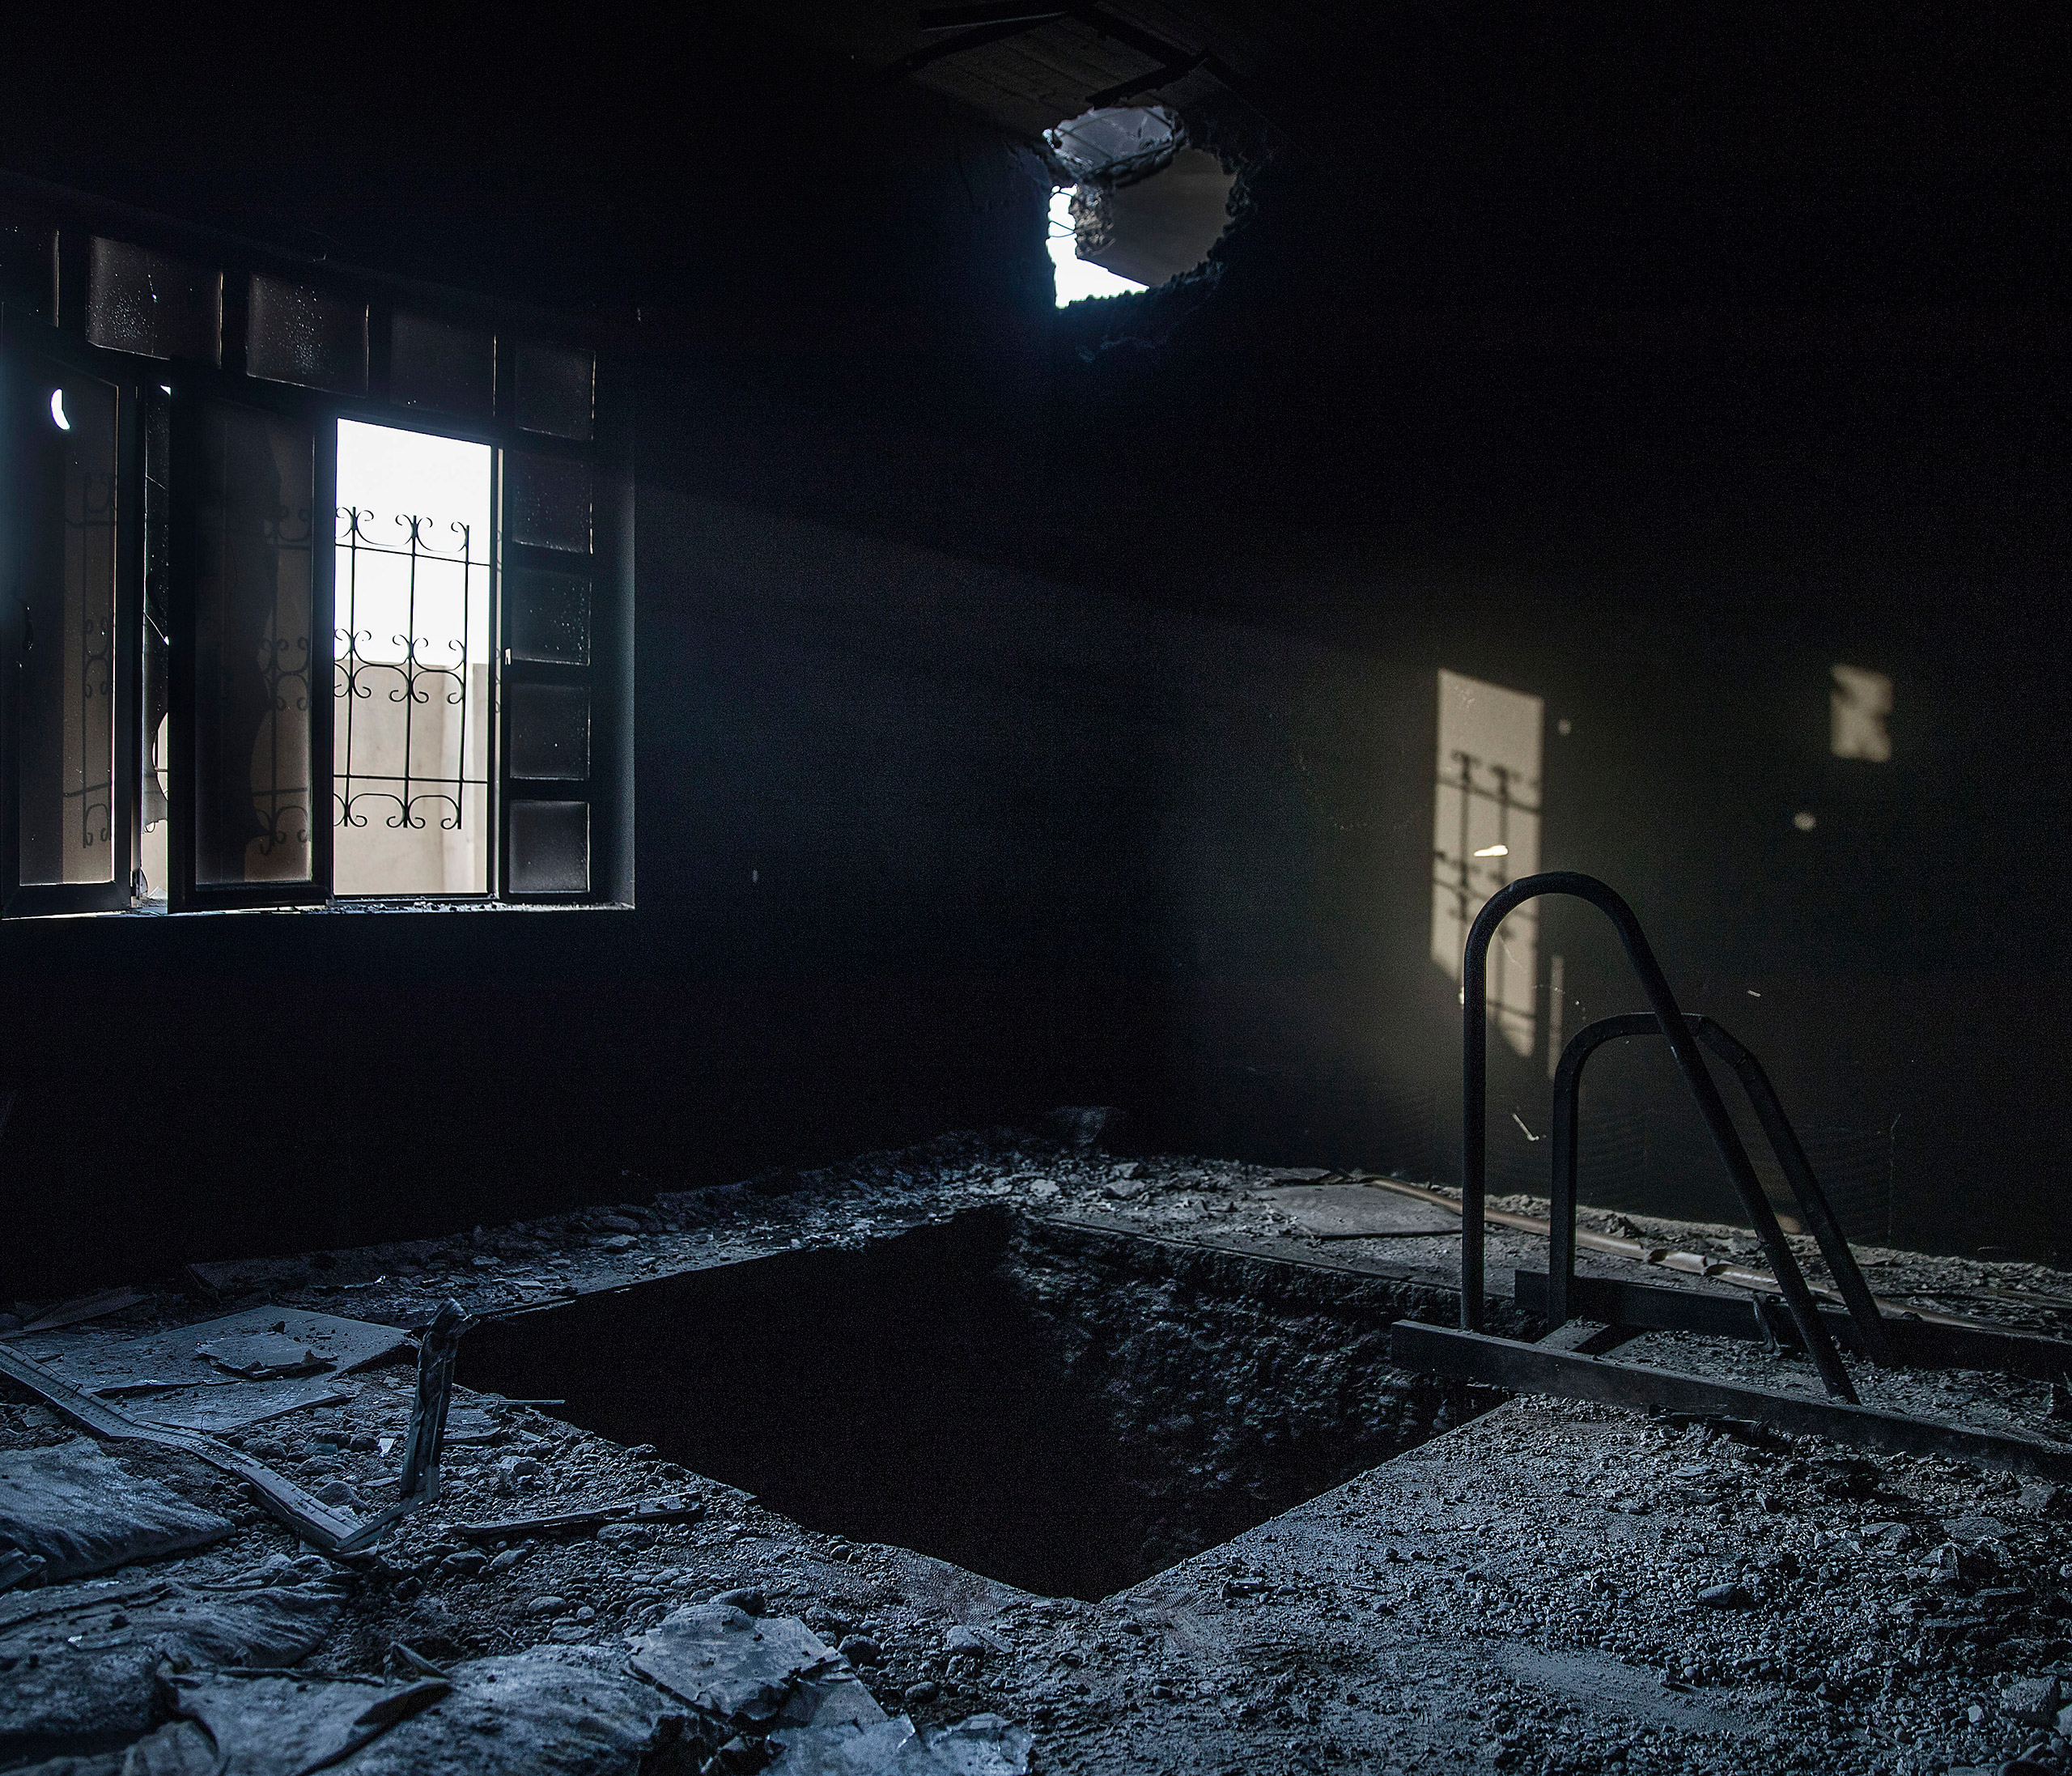 A tunnel inside an abandoned house in the outskirts of Mosul, Iraq, recaptured from the Islamic State (ISIS) jihadists by Kurdish Peshmerga and Iraqi forces, Oct. 2016.